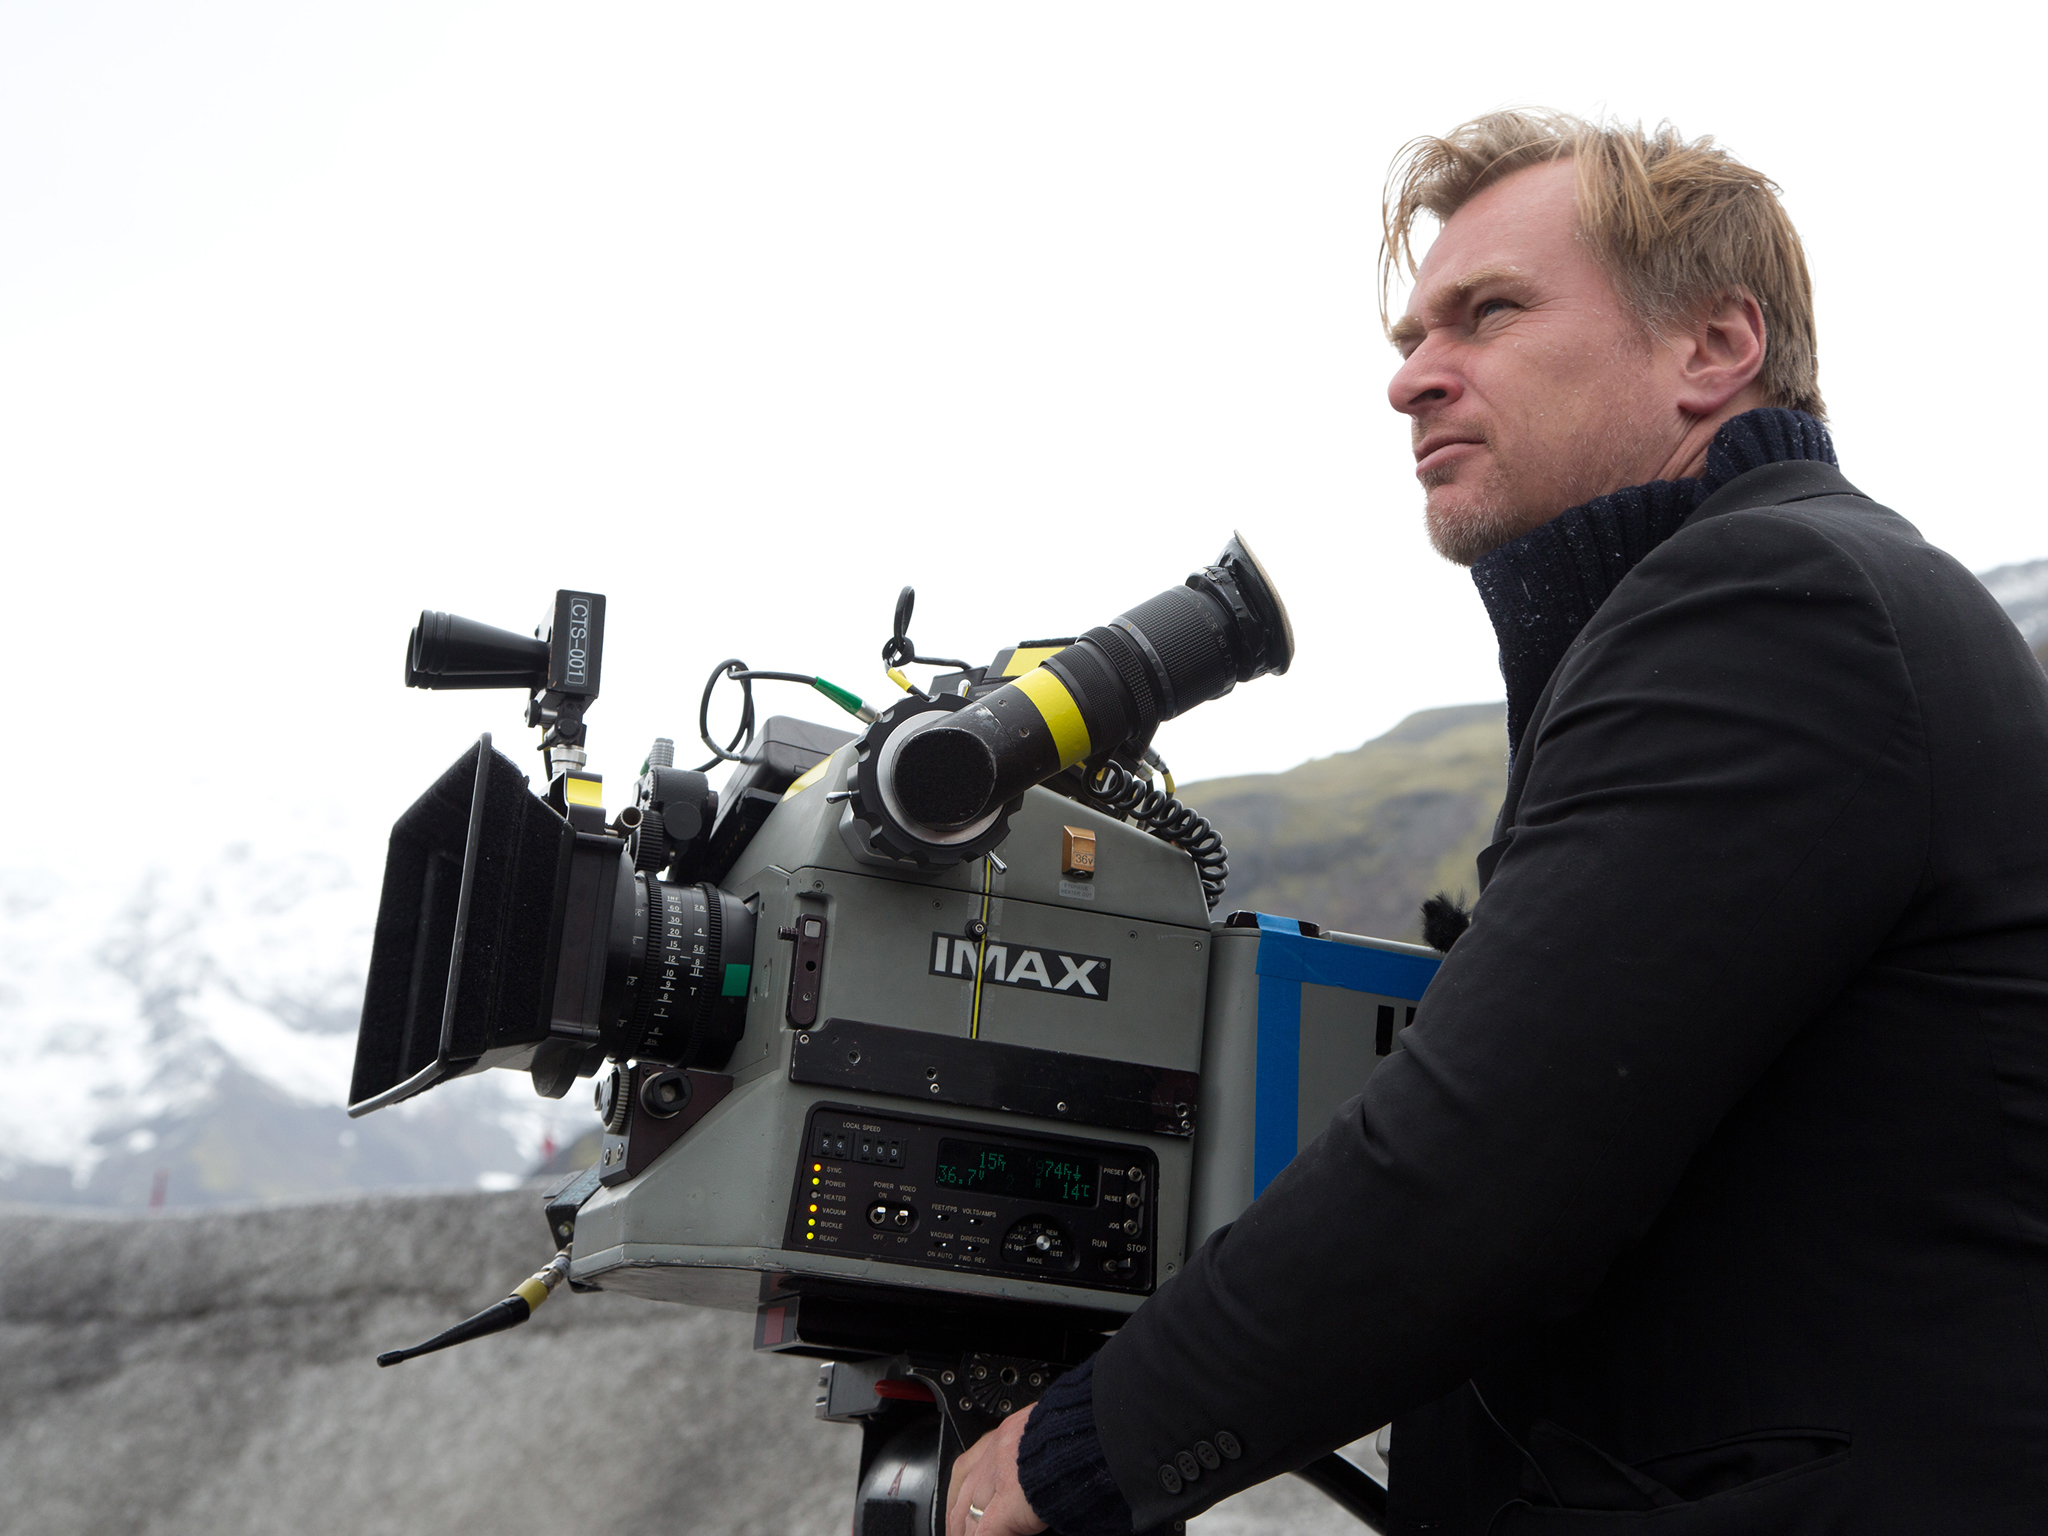 next James Bond director - Christopher Nolan